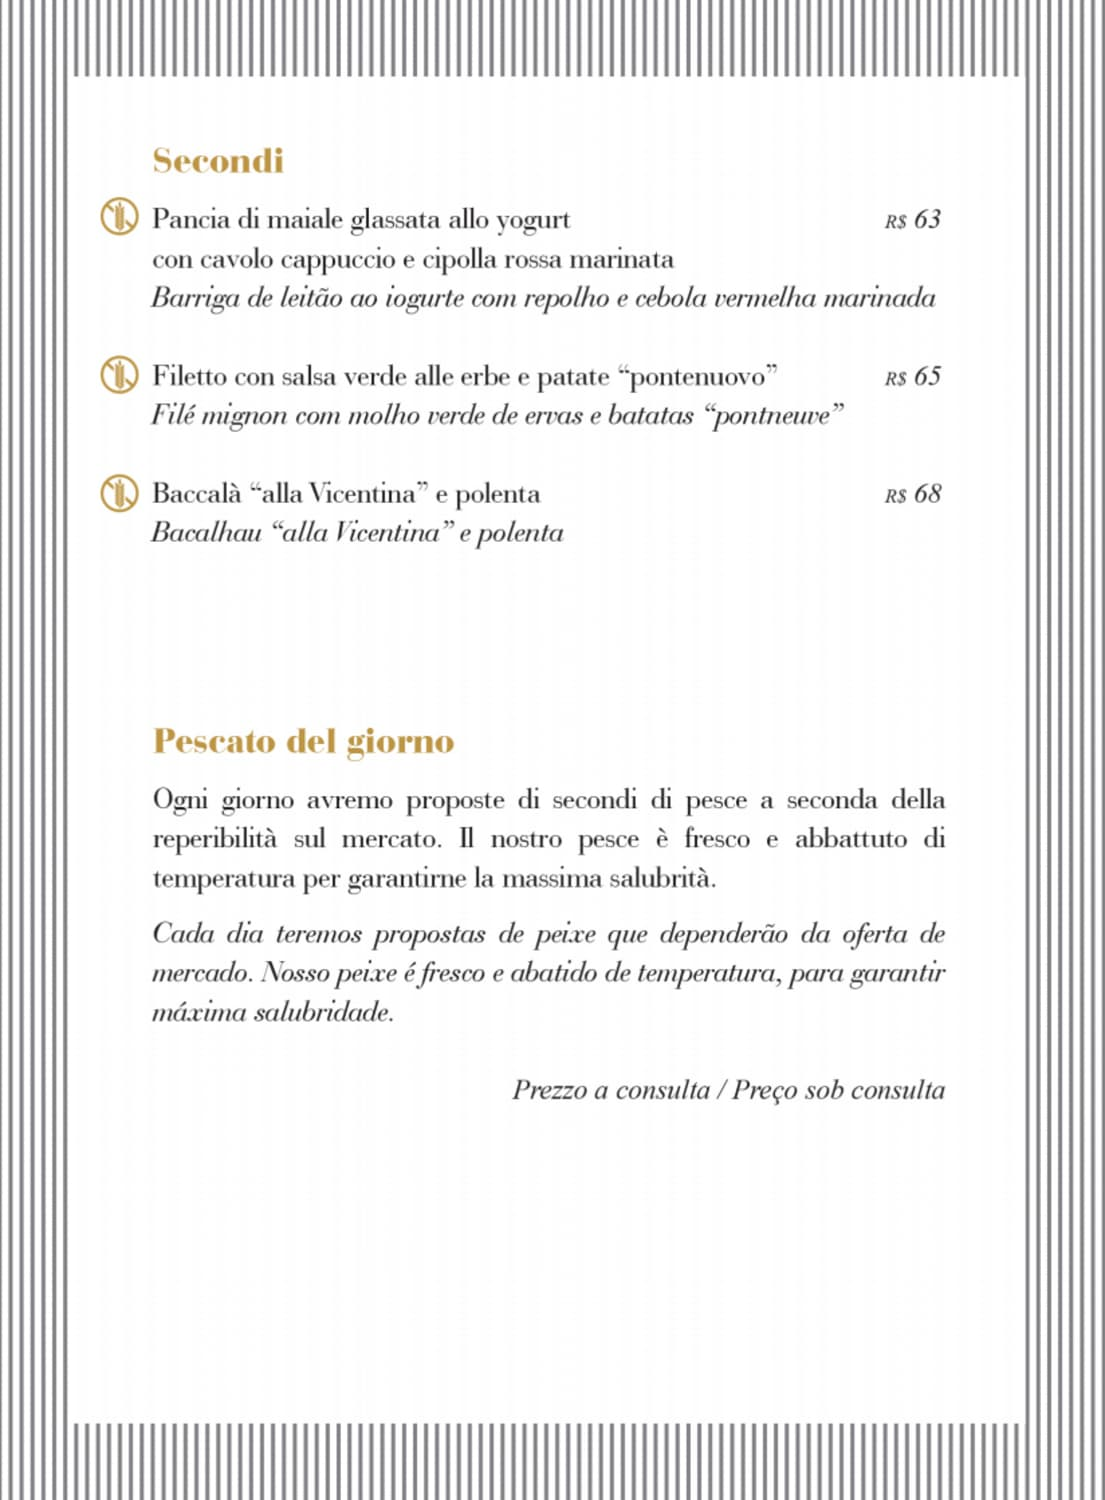 Menu do restaurante Simon Boccanegra - Página 3